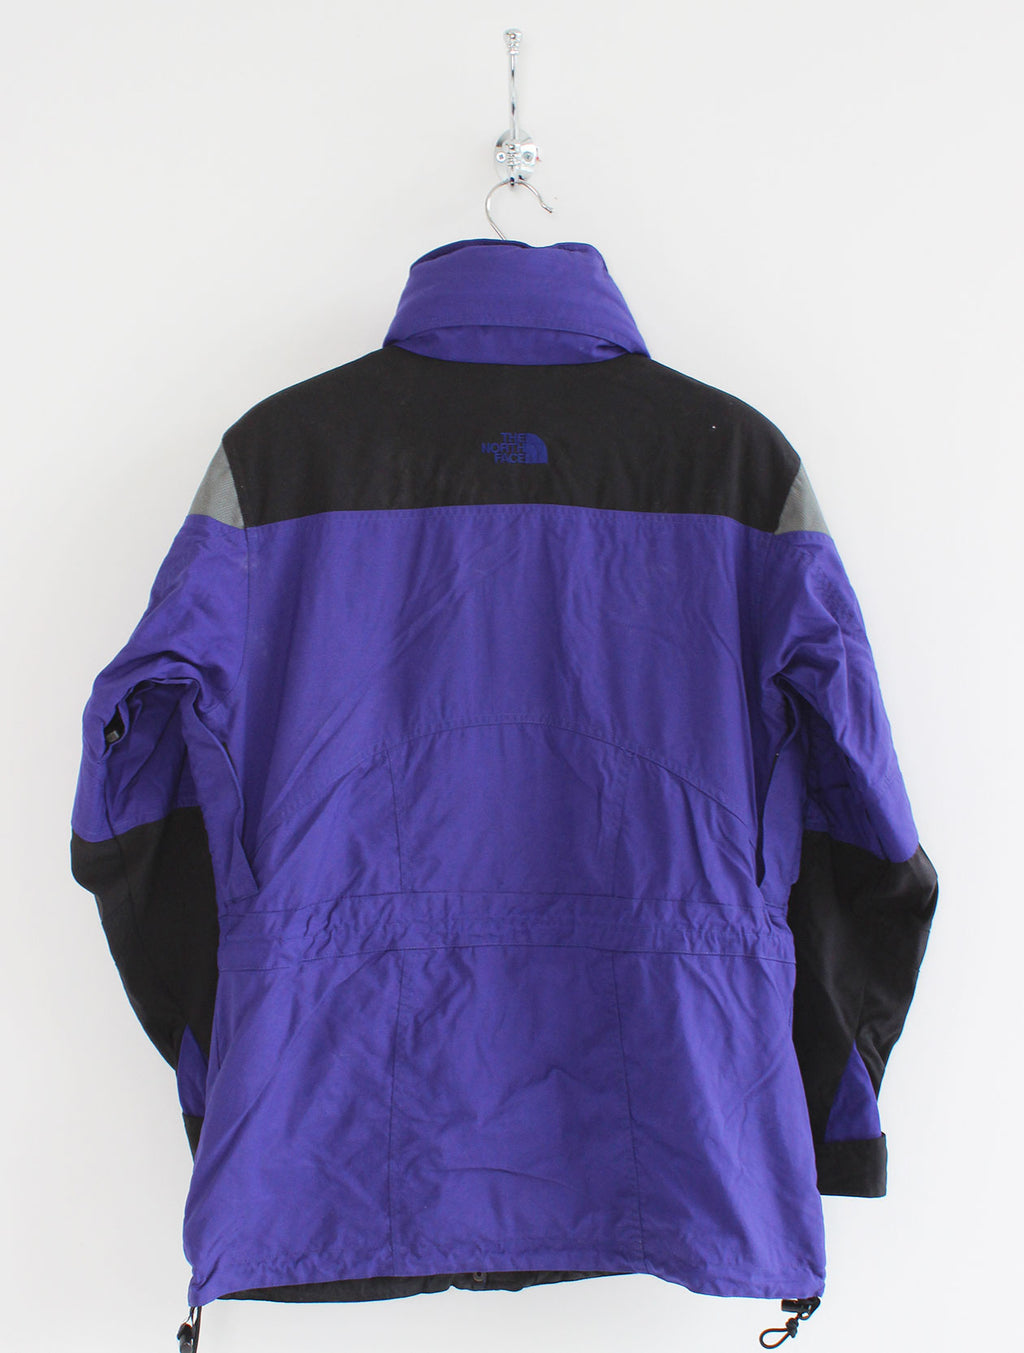 Women's The North Face Extreme Gear Jacket (S)